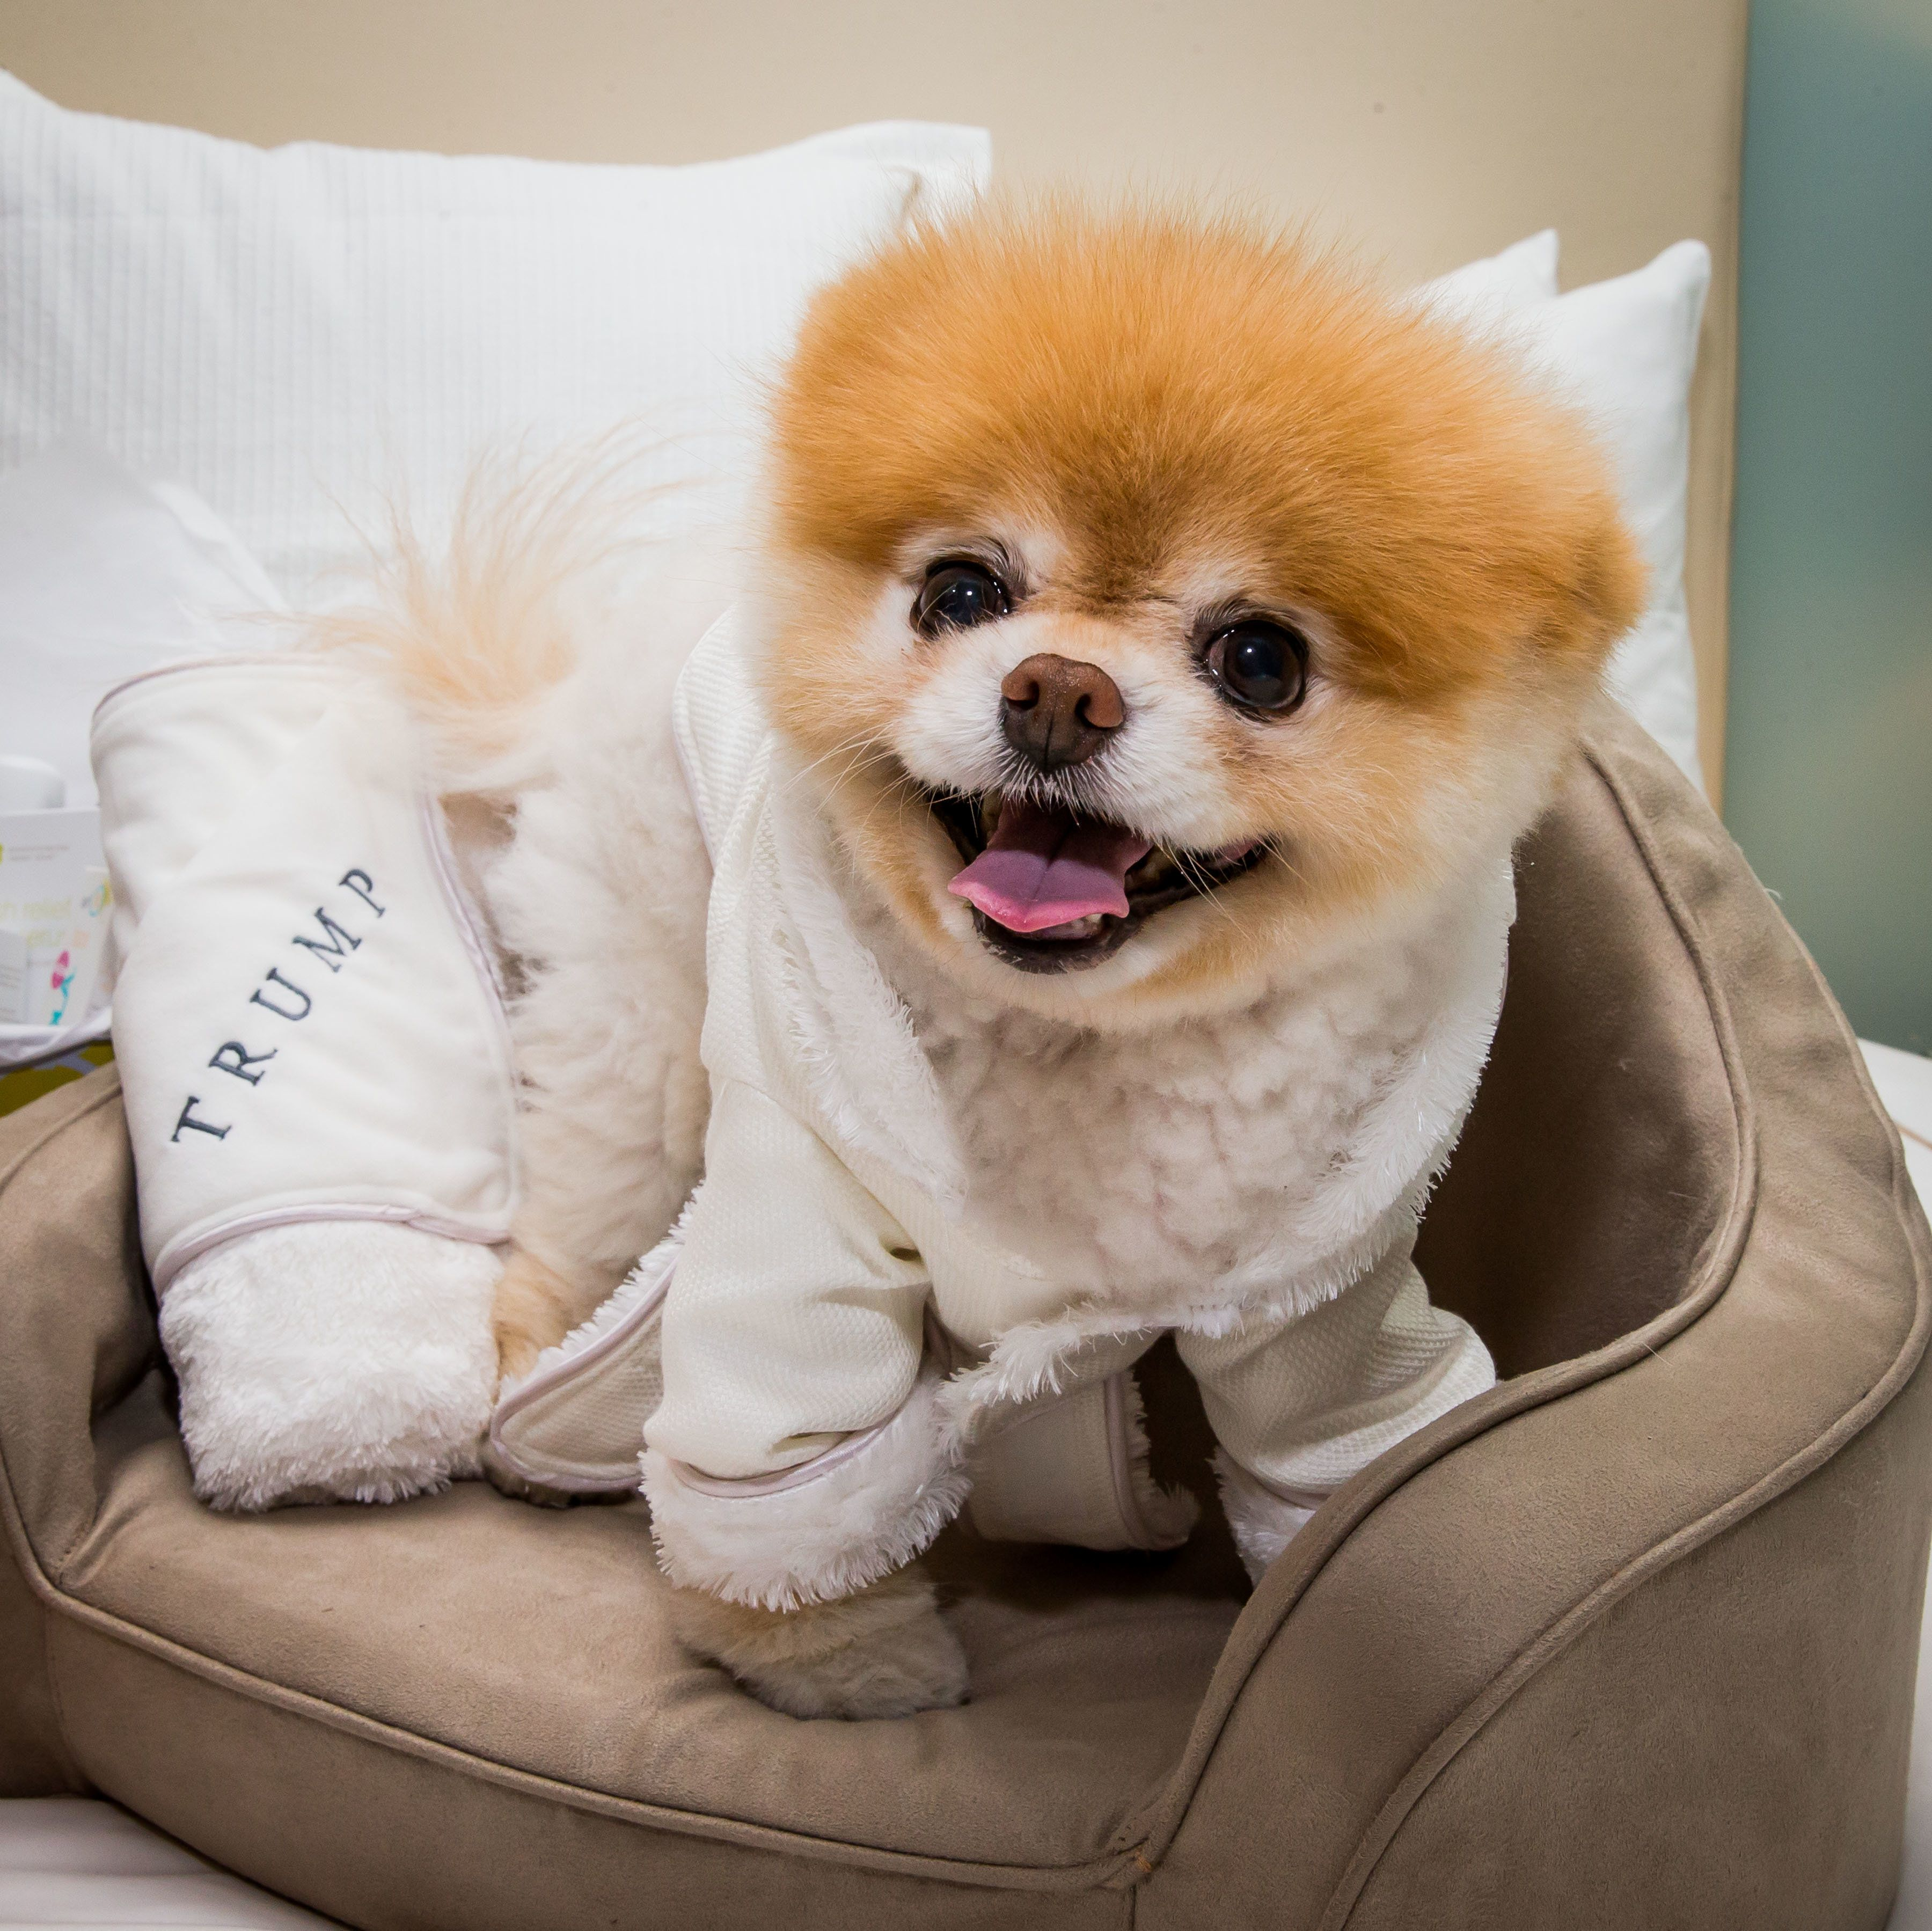 Boo, a dog massively famous on social media for his adorable face, in